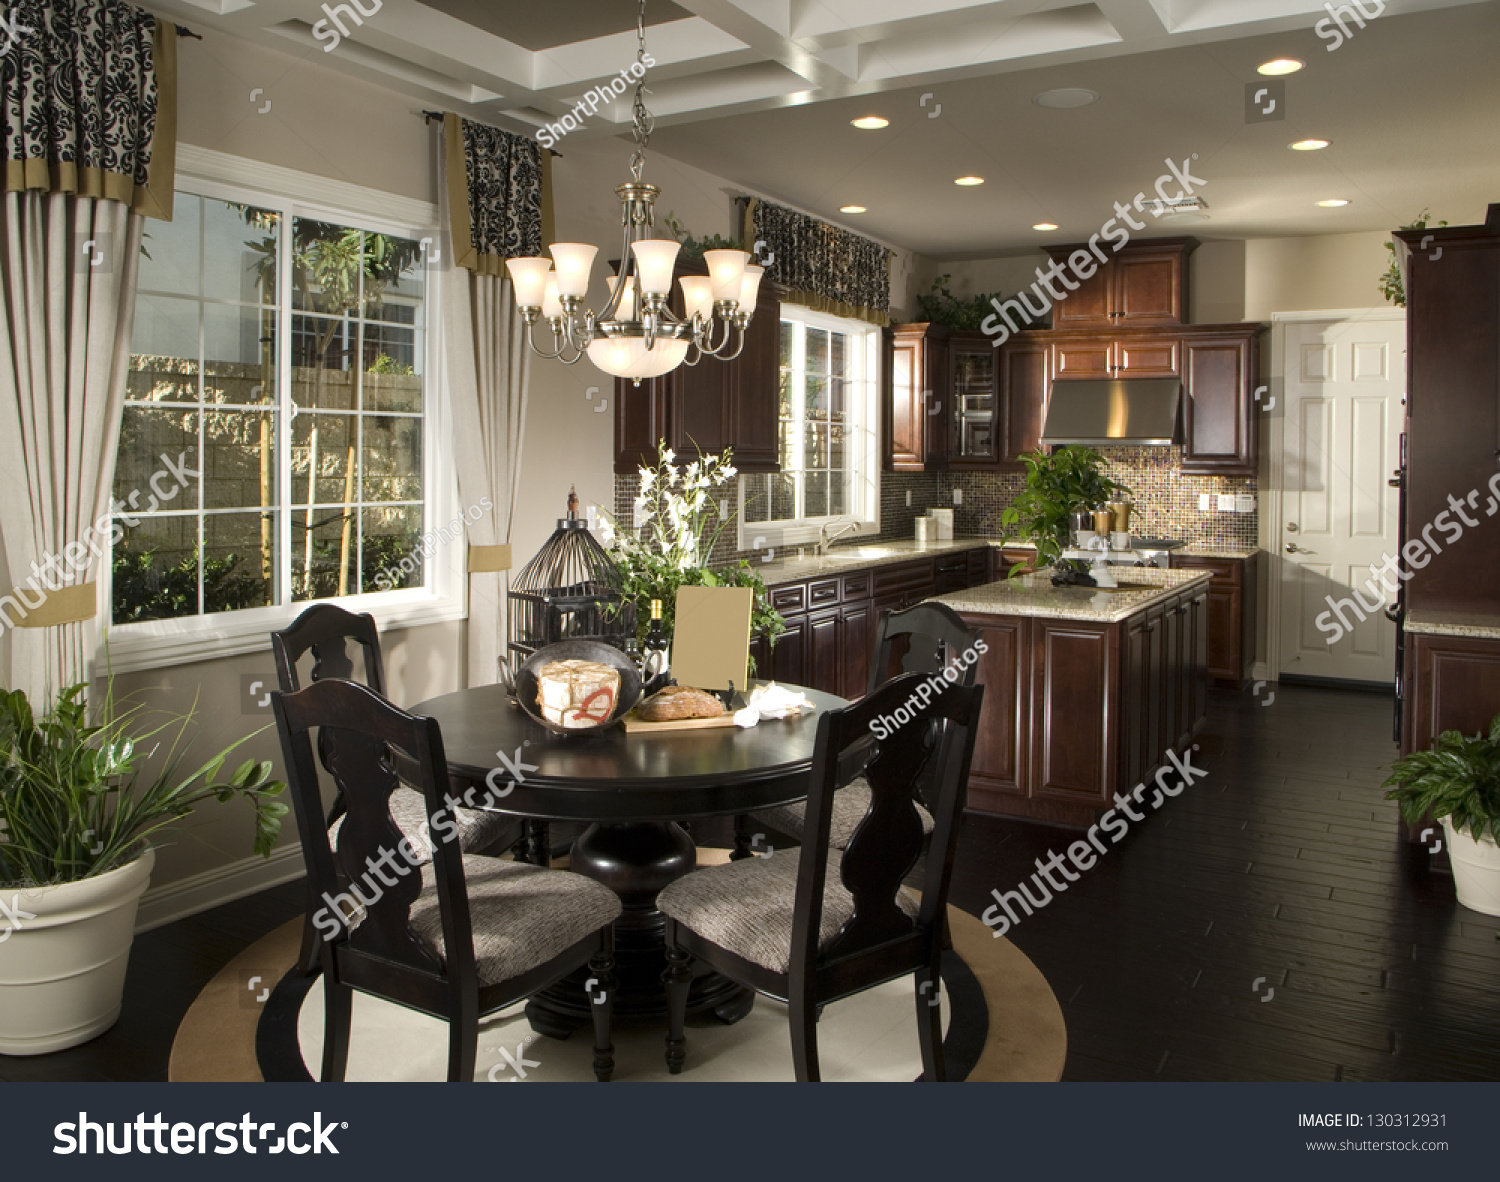 Living Room And Kitchen Elegant Dinning Room Kitchen Architecture Stock Imagesphotos Of